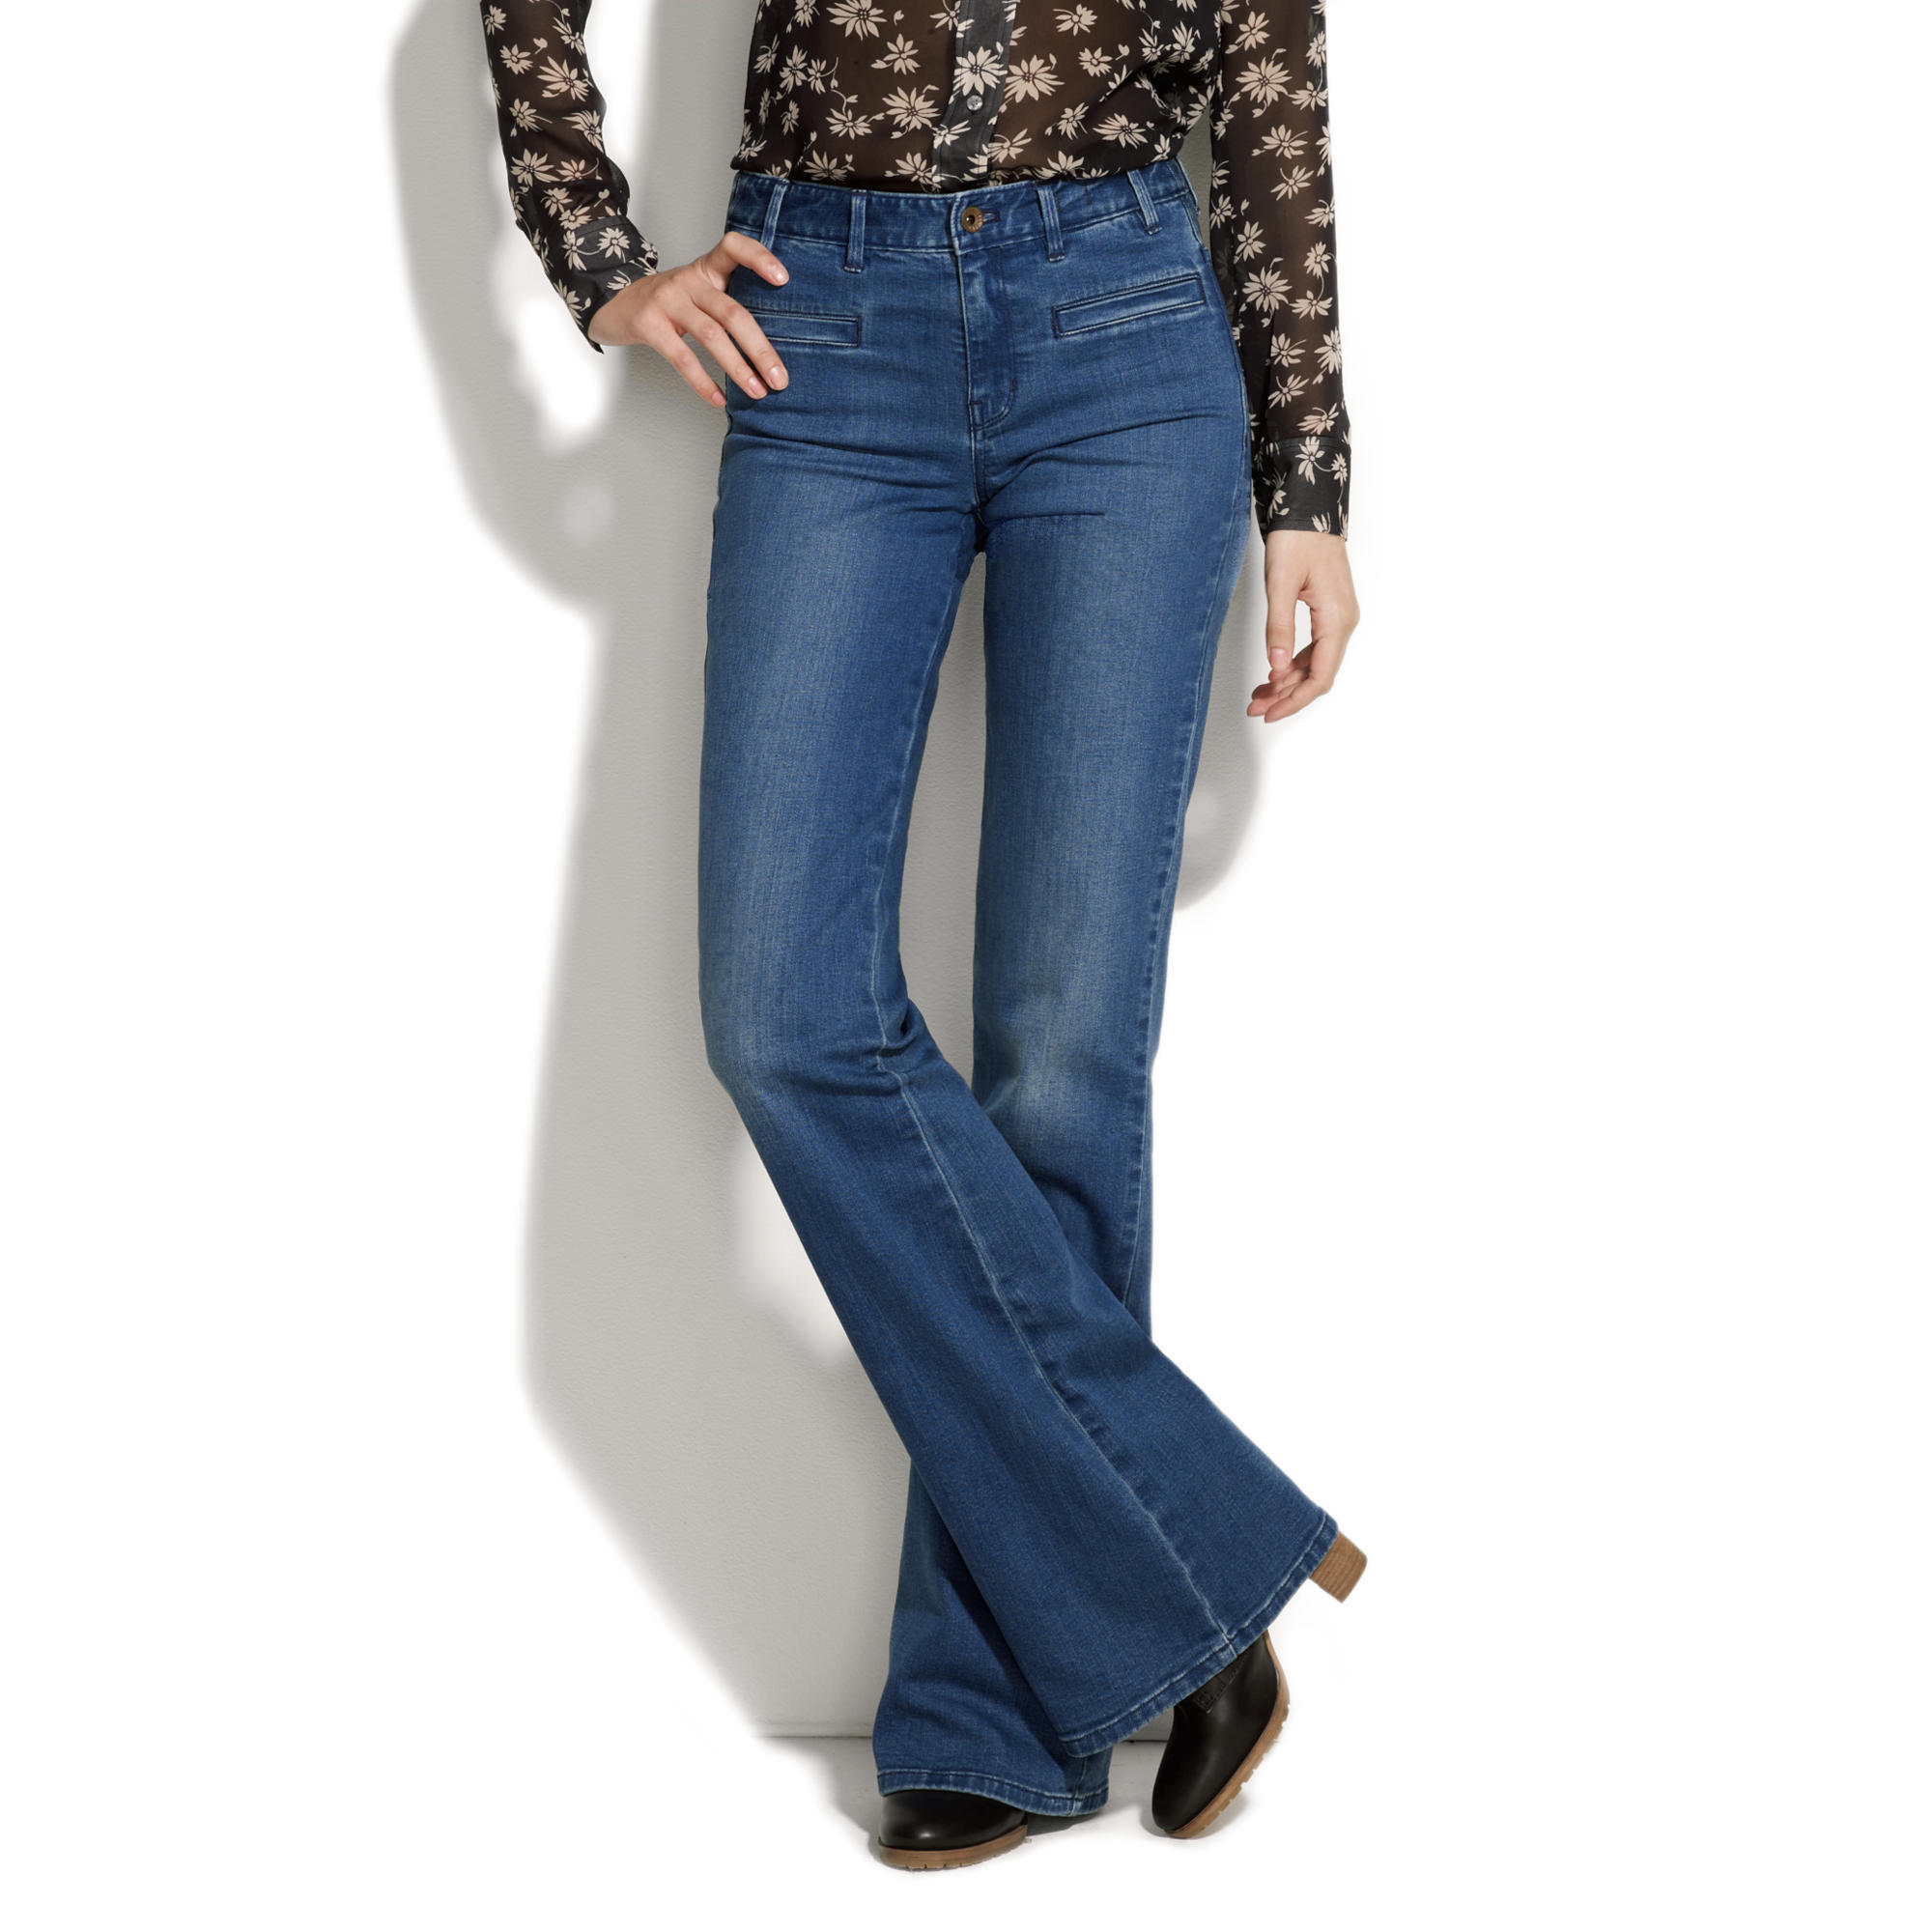 Alexa Chung for Madewell It's All Happening Denim Trousers ...